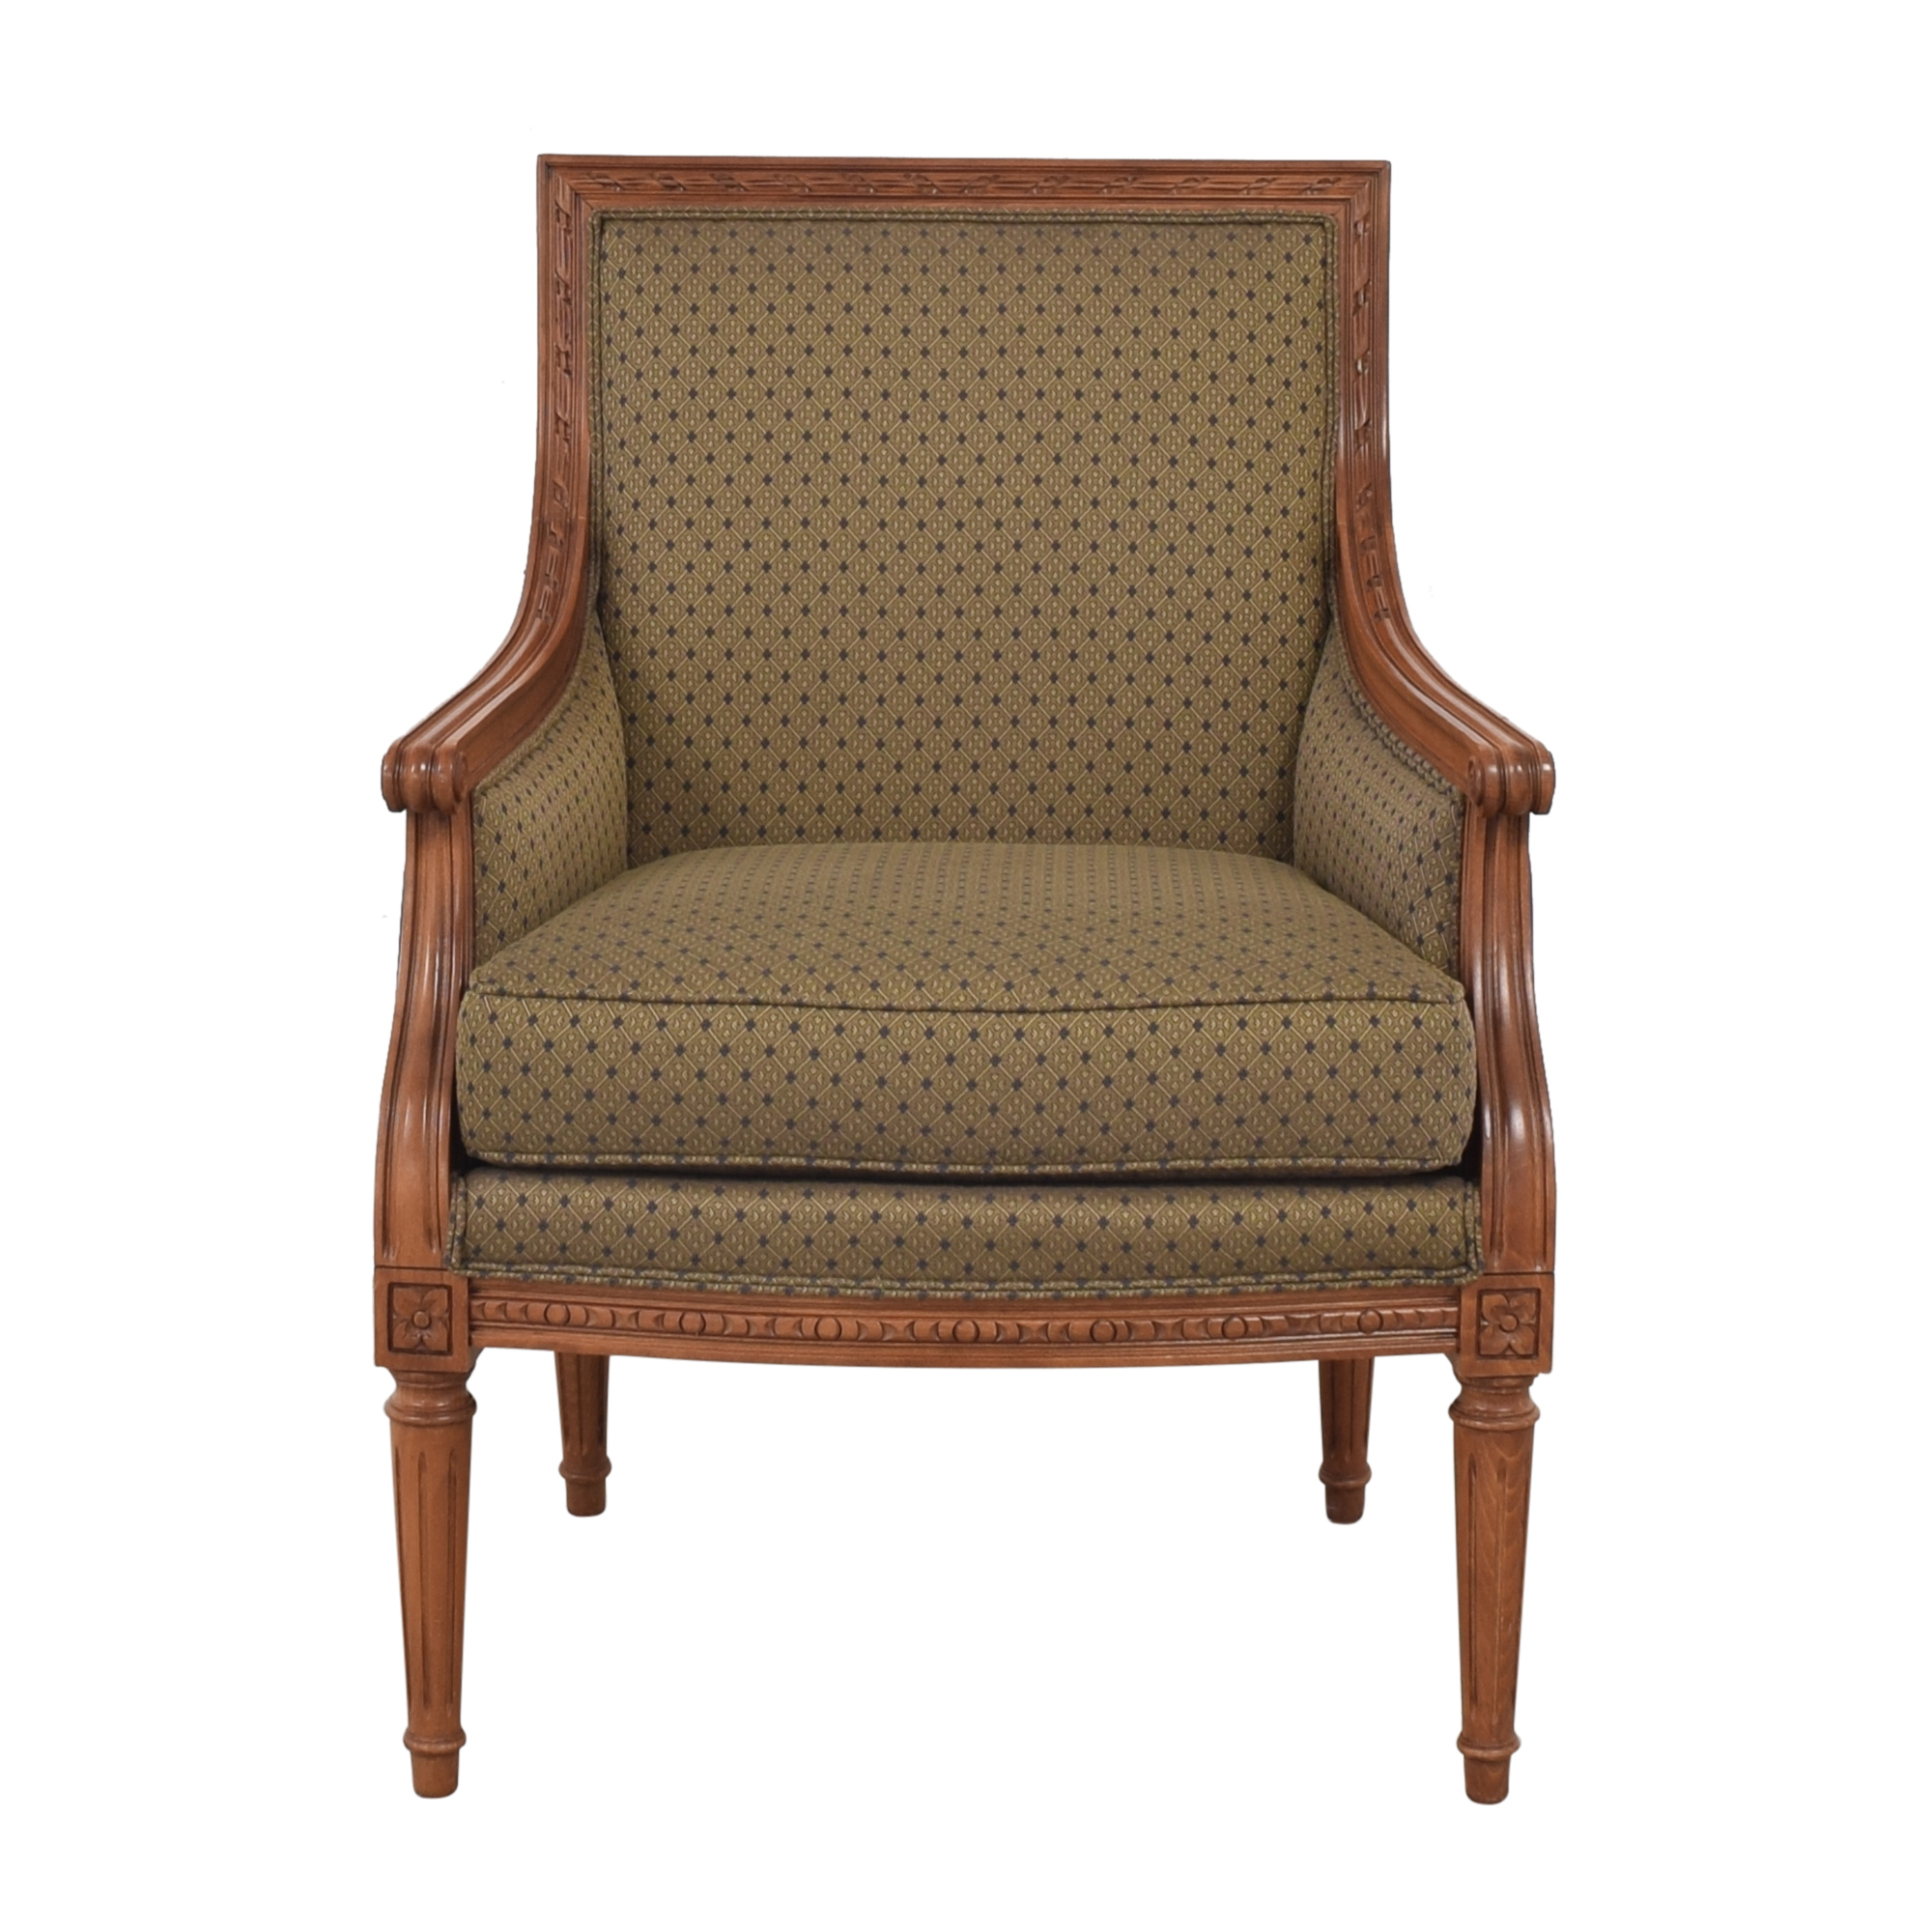 Ethan Allen Ethan Allen Gisele Chair coupon